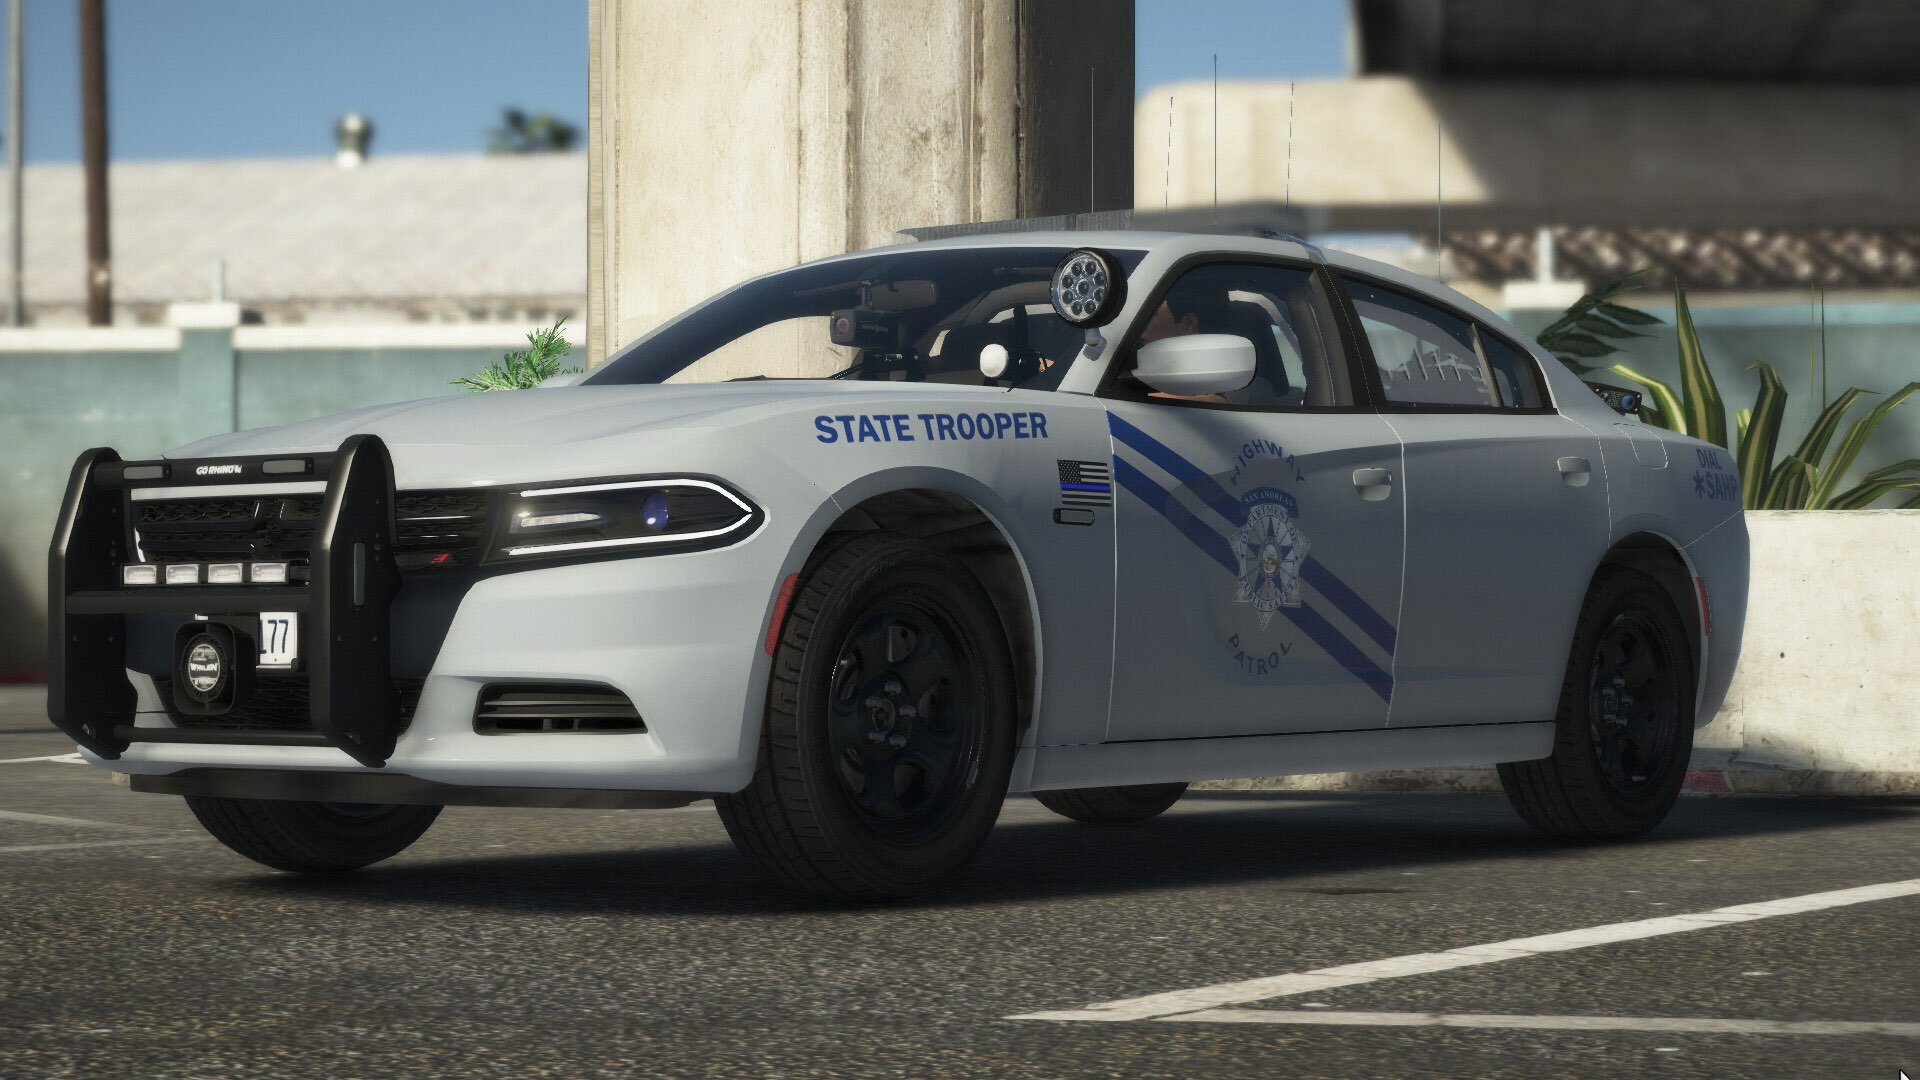 SAHP Silver Charger